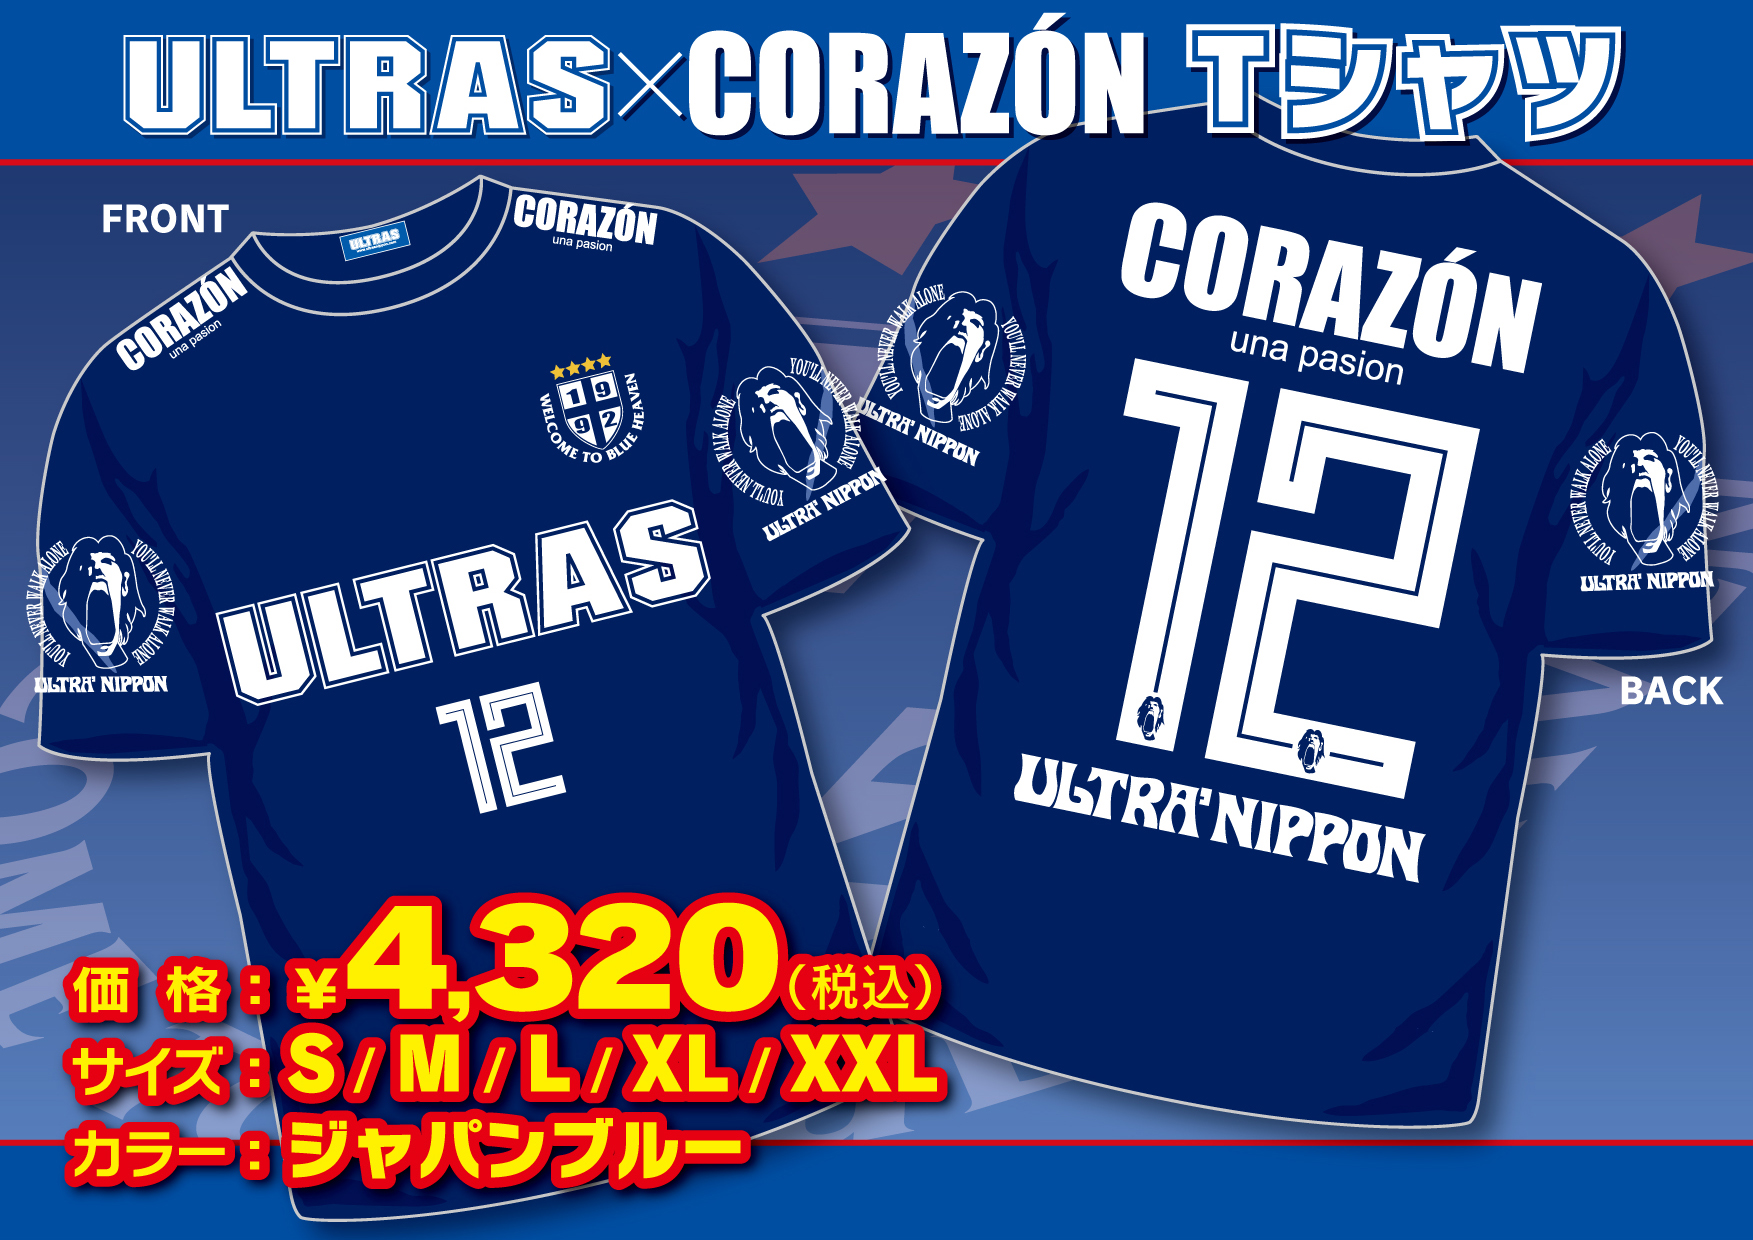 ULTRAS×CORAZON Tシャツ